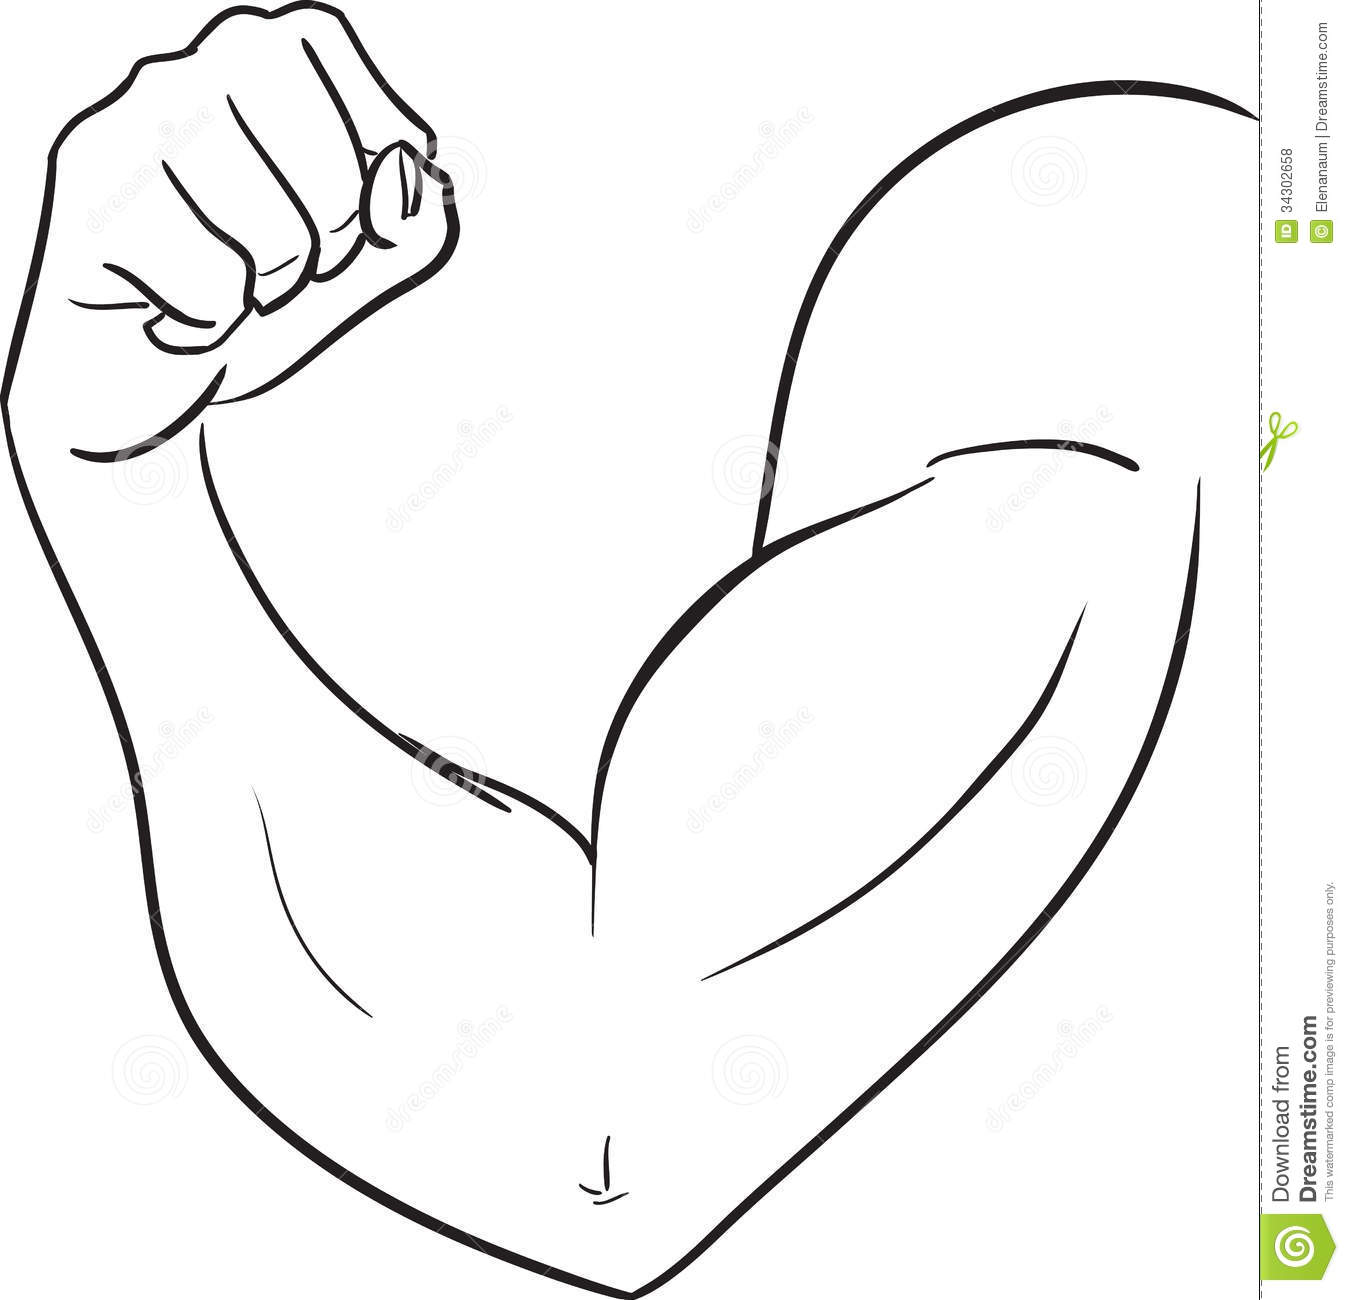 Muscles Clipart | Free download best Muscles Clipart on ClipArtMag.com png freeuse download